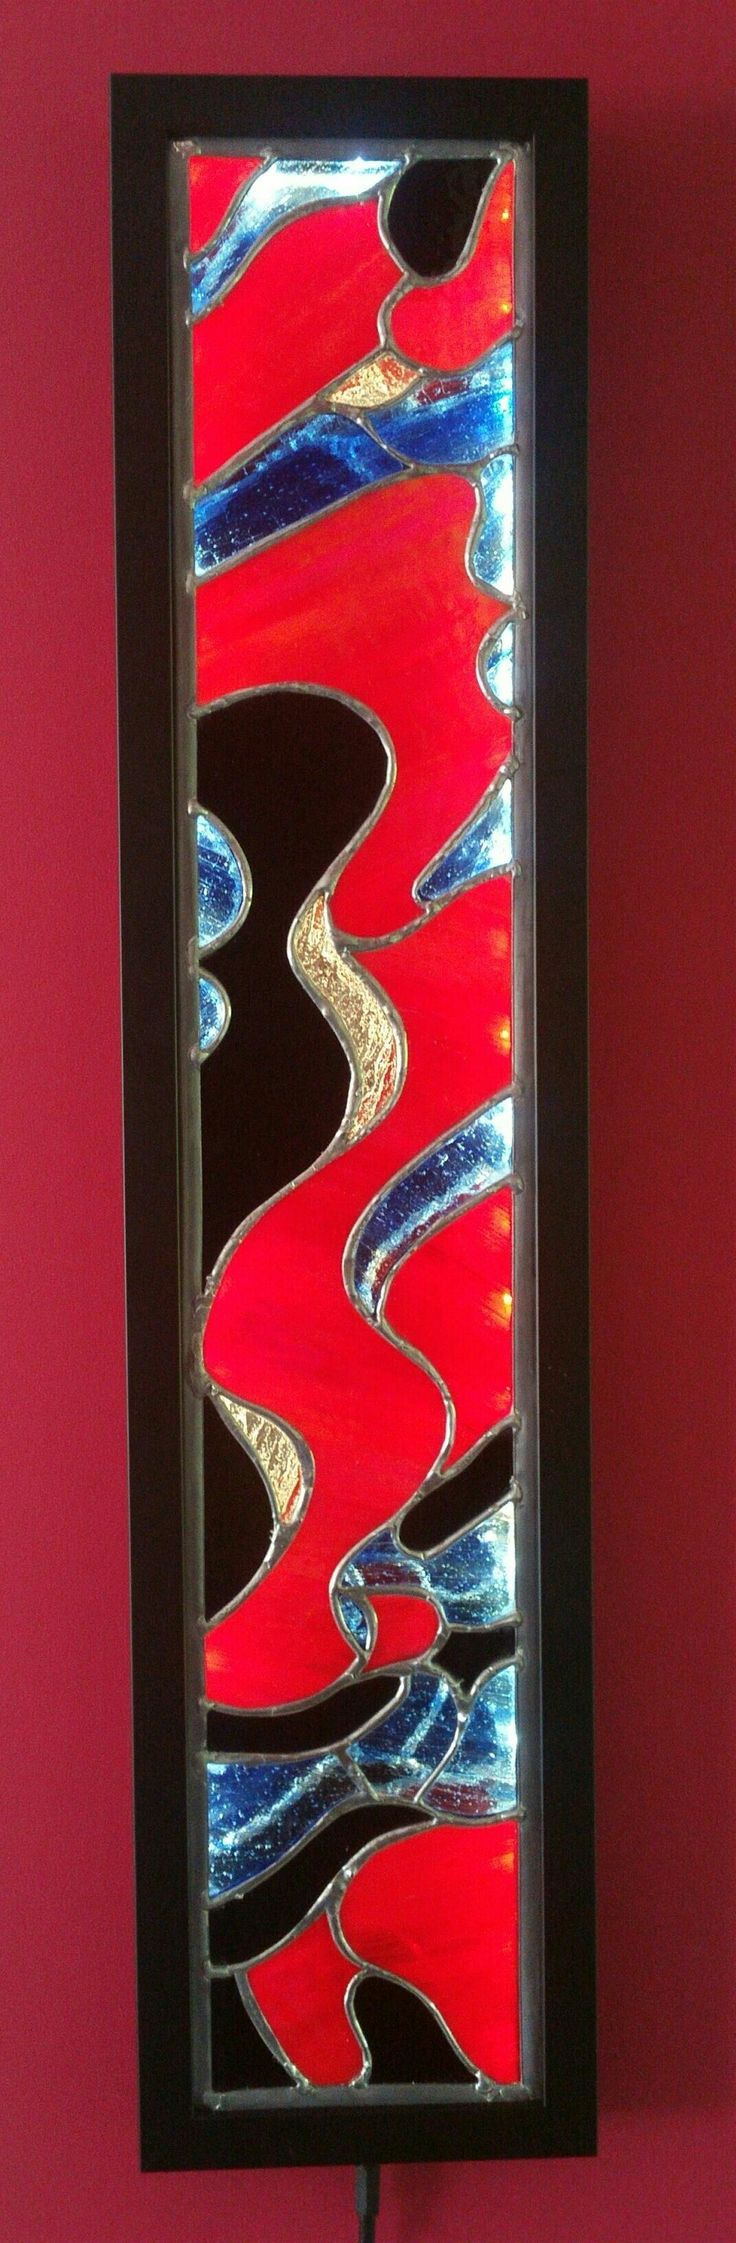 Slice of a Galaxy - Outer Rim.  Stained Glass Artwork & Lightbox created by #dolittleglass